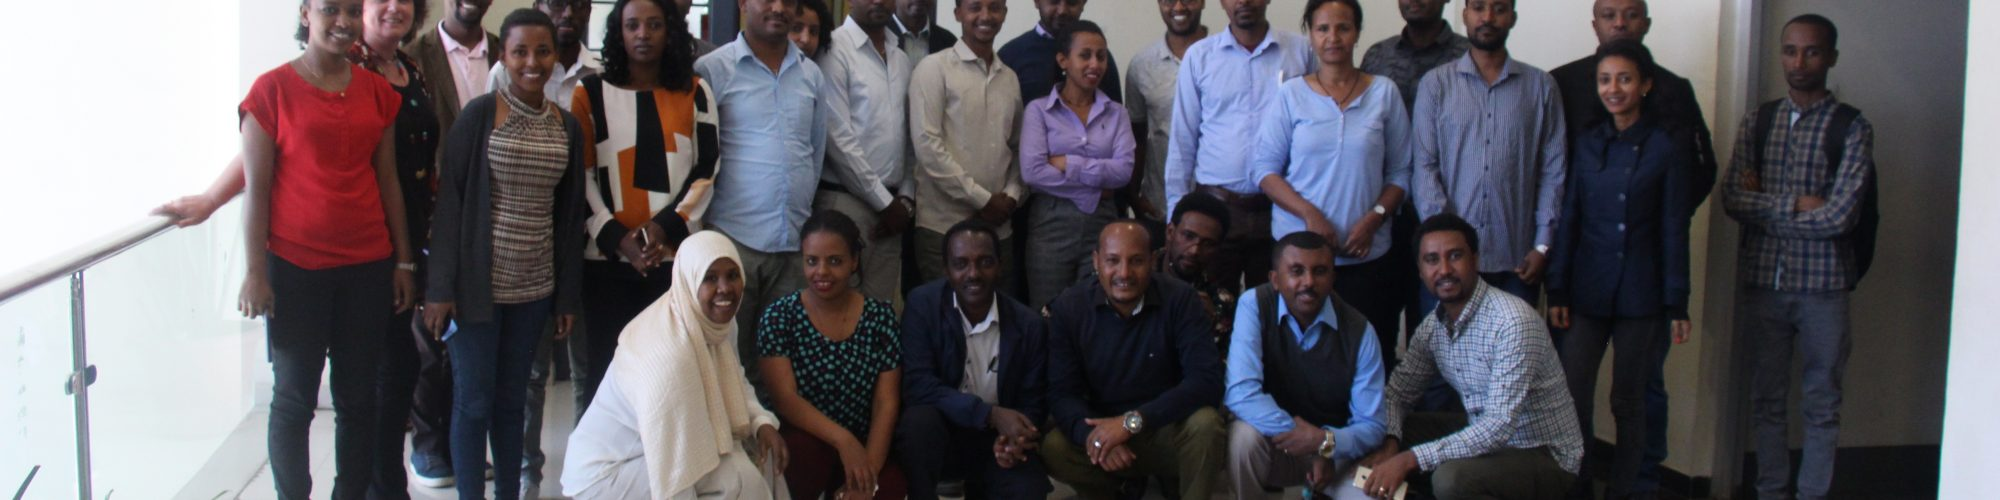 Compact2025 strengthens capacities of NIPN stakeholders in Ethiopia to analyze existing data